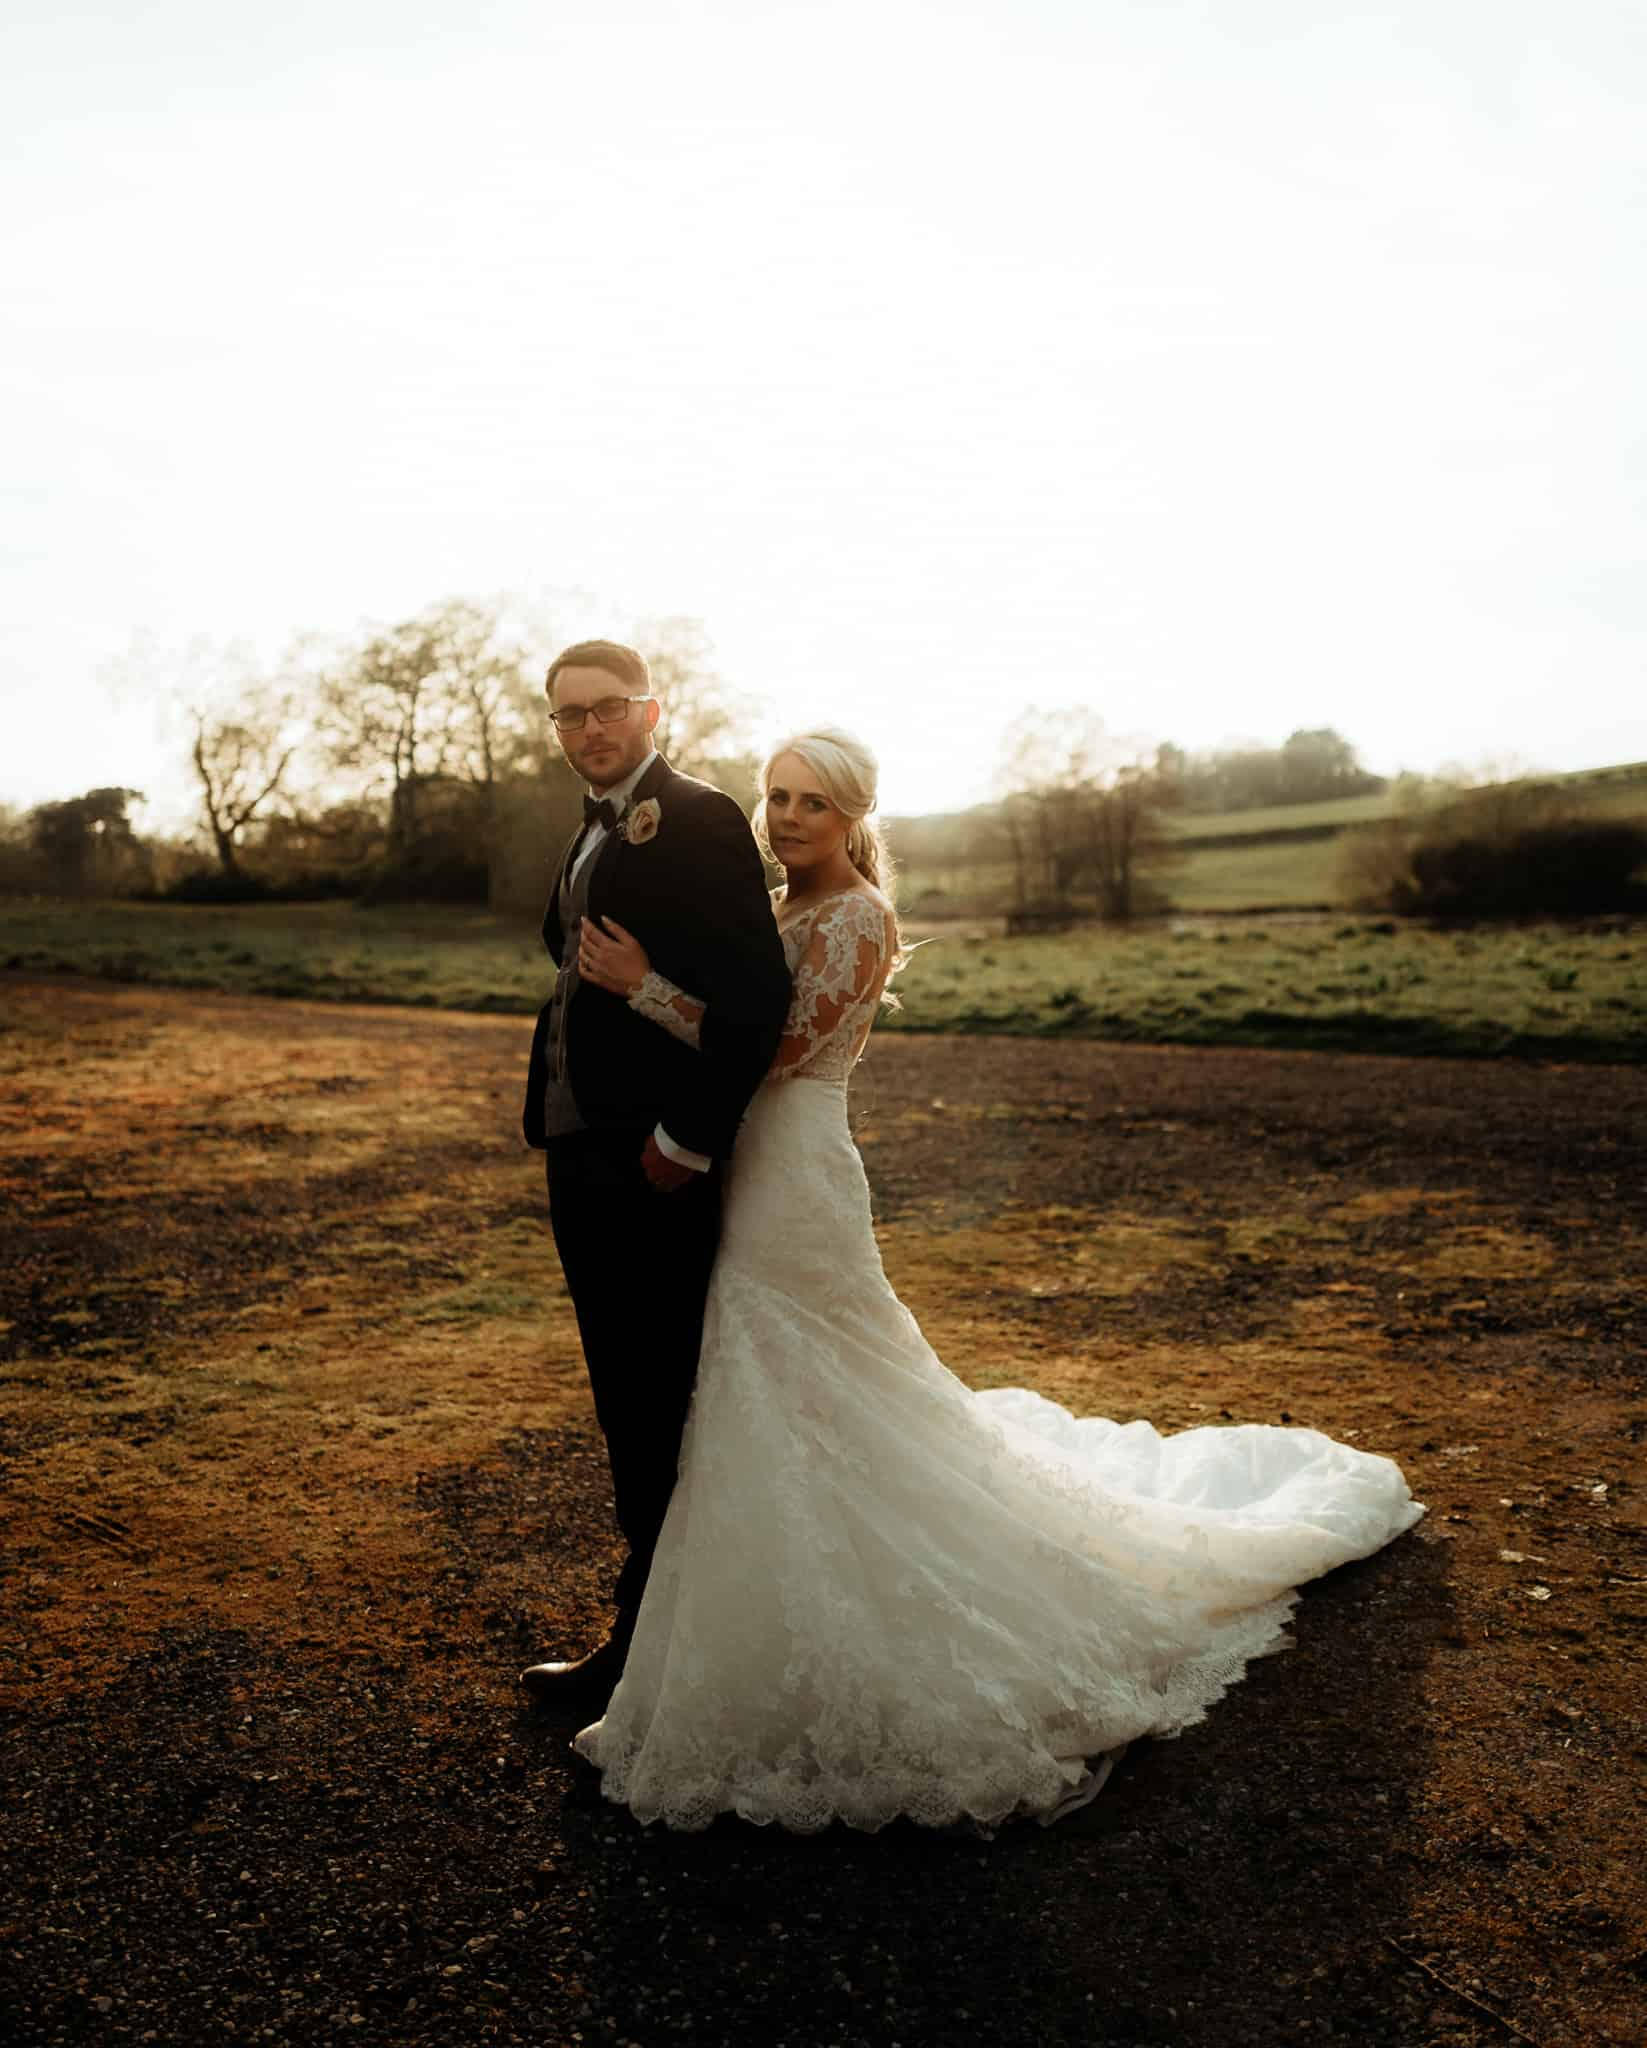 Bride & groom portraut at Delamere manor in soft golden light